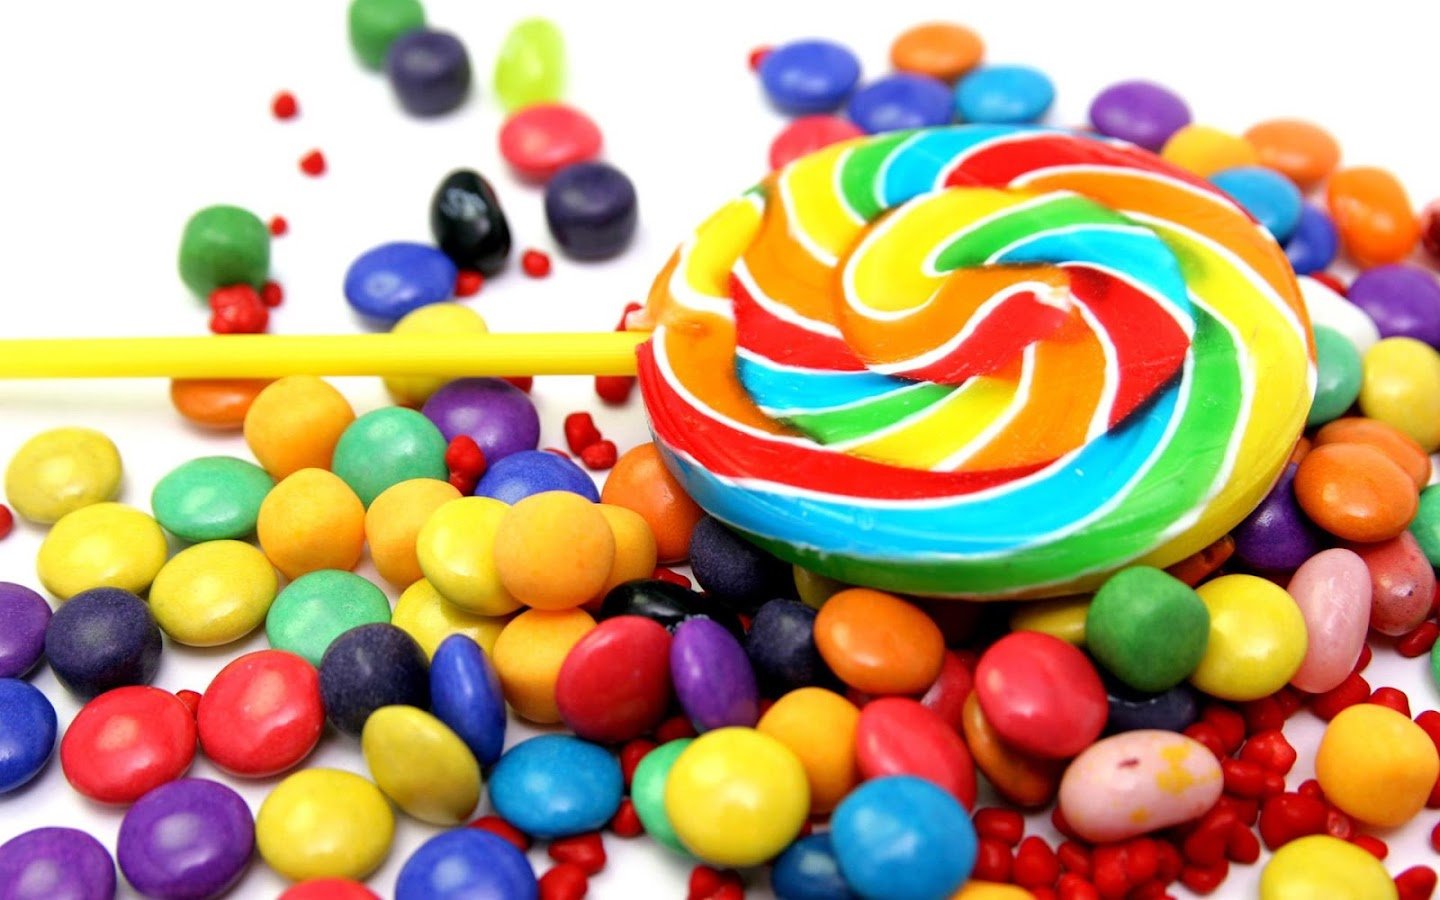 HD Candy Wallpaper Android Apps on Google Play